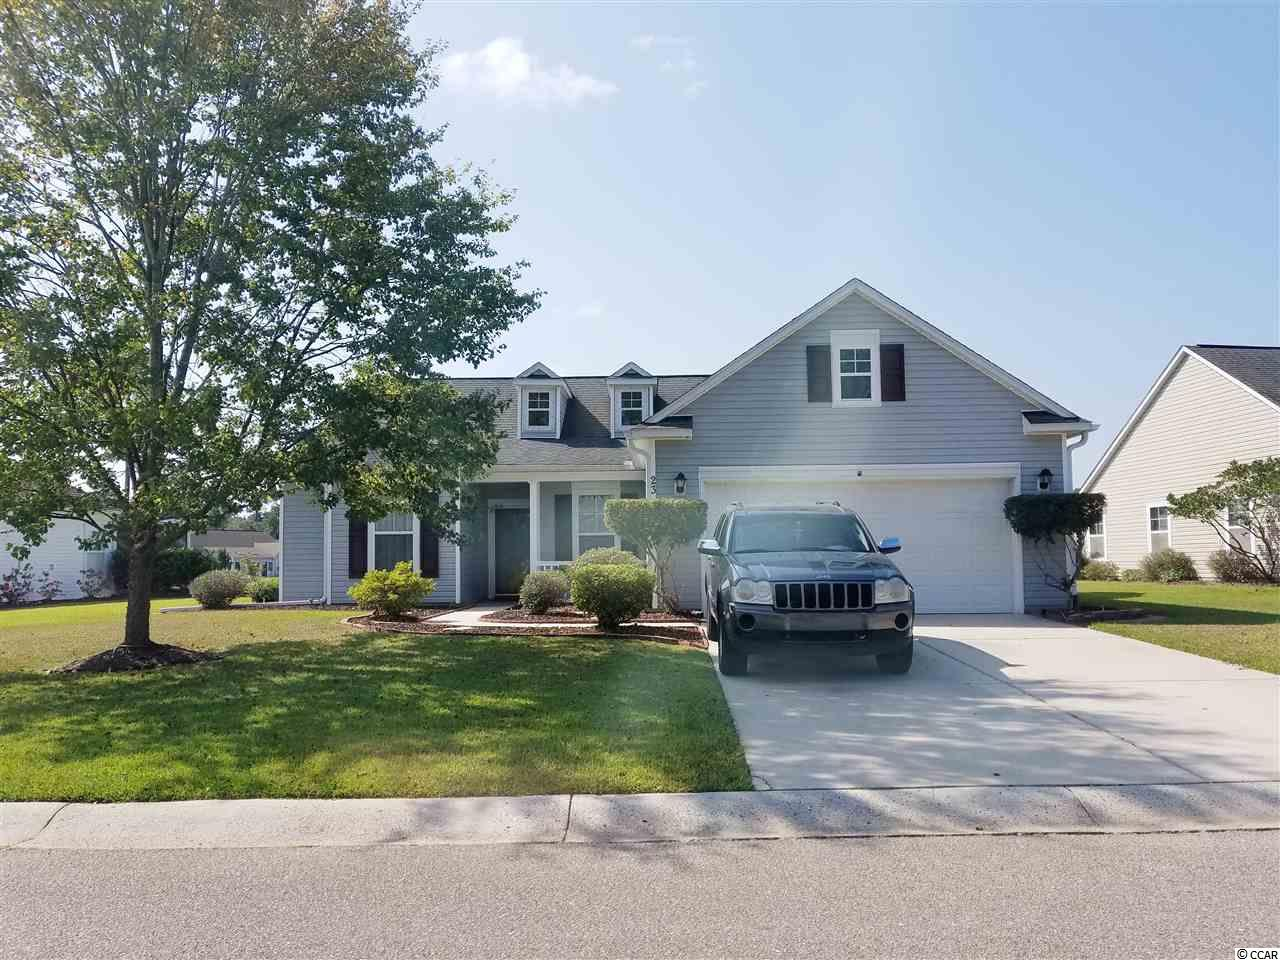 This 3 bedroom 2 bath home boasts a wonderful view of the Lake/Pond, tray ceiling in Master bedroom, NEW stove installed, microwave 2018, Refrigerator 2017, Washer 2016, Dryer 2015, Dishwasher 2013. Family/Great Room features 2 ceiling fans. Home is well maintained and a must see! Over-sized screened in rear patio as well an over-sized rear patio. Home is located in the desirable community of Links Brook which has a huge pool, hot tub, tennis courts, picnic pavilion with bbq's, horse shoe court, Clubhouse with fitness center, pool table, very active community center. Close to Huntington Beach State Park, Brookgreen Gardens, Murrells Inlet Marsh Walk, Restaurants, Shopping, Entertainment, Fishing, Boating, and so much more the area has to offer!